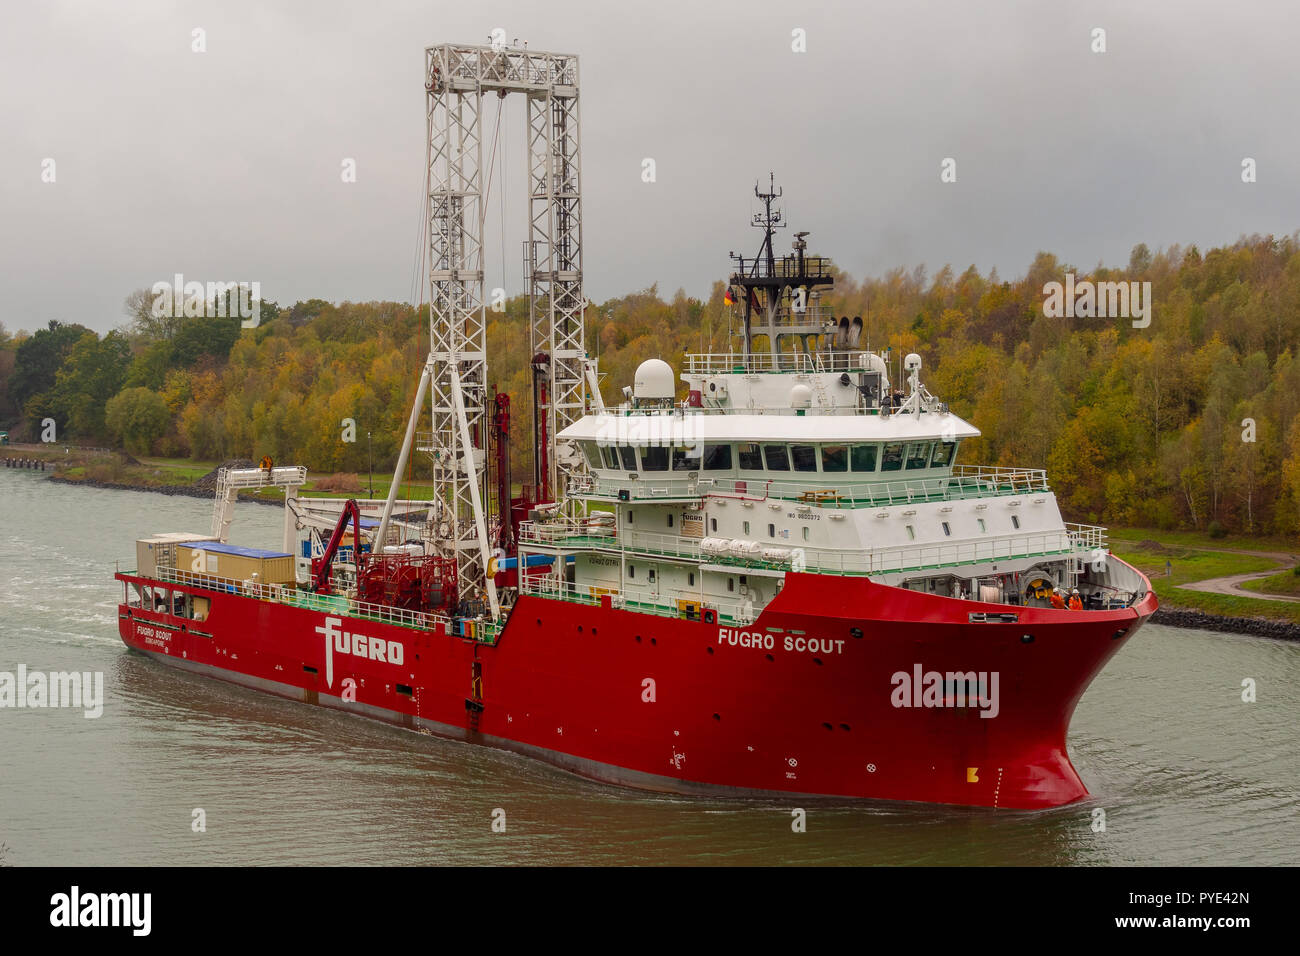 Fugro Scout Stock Photo